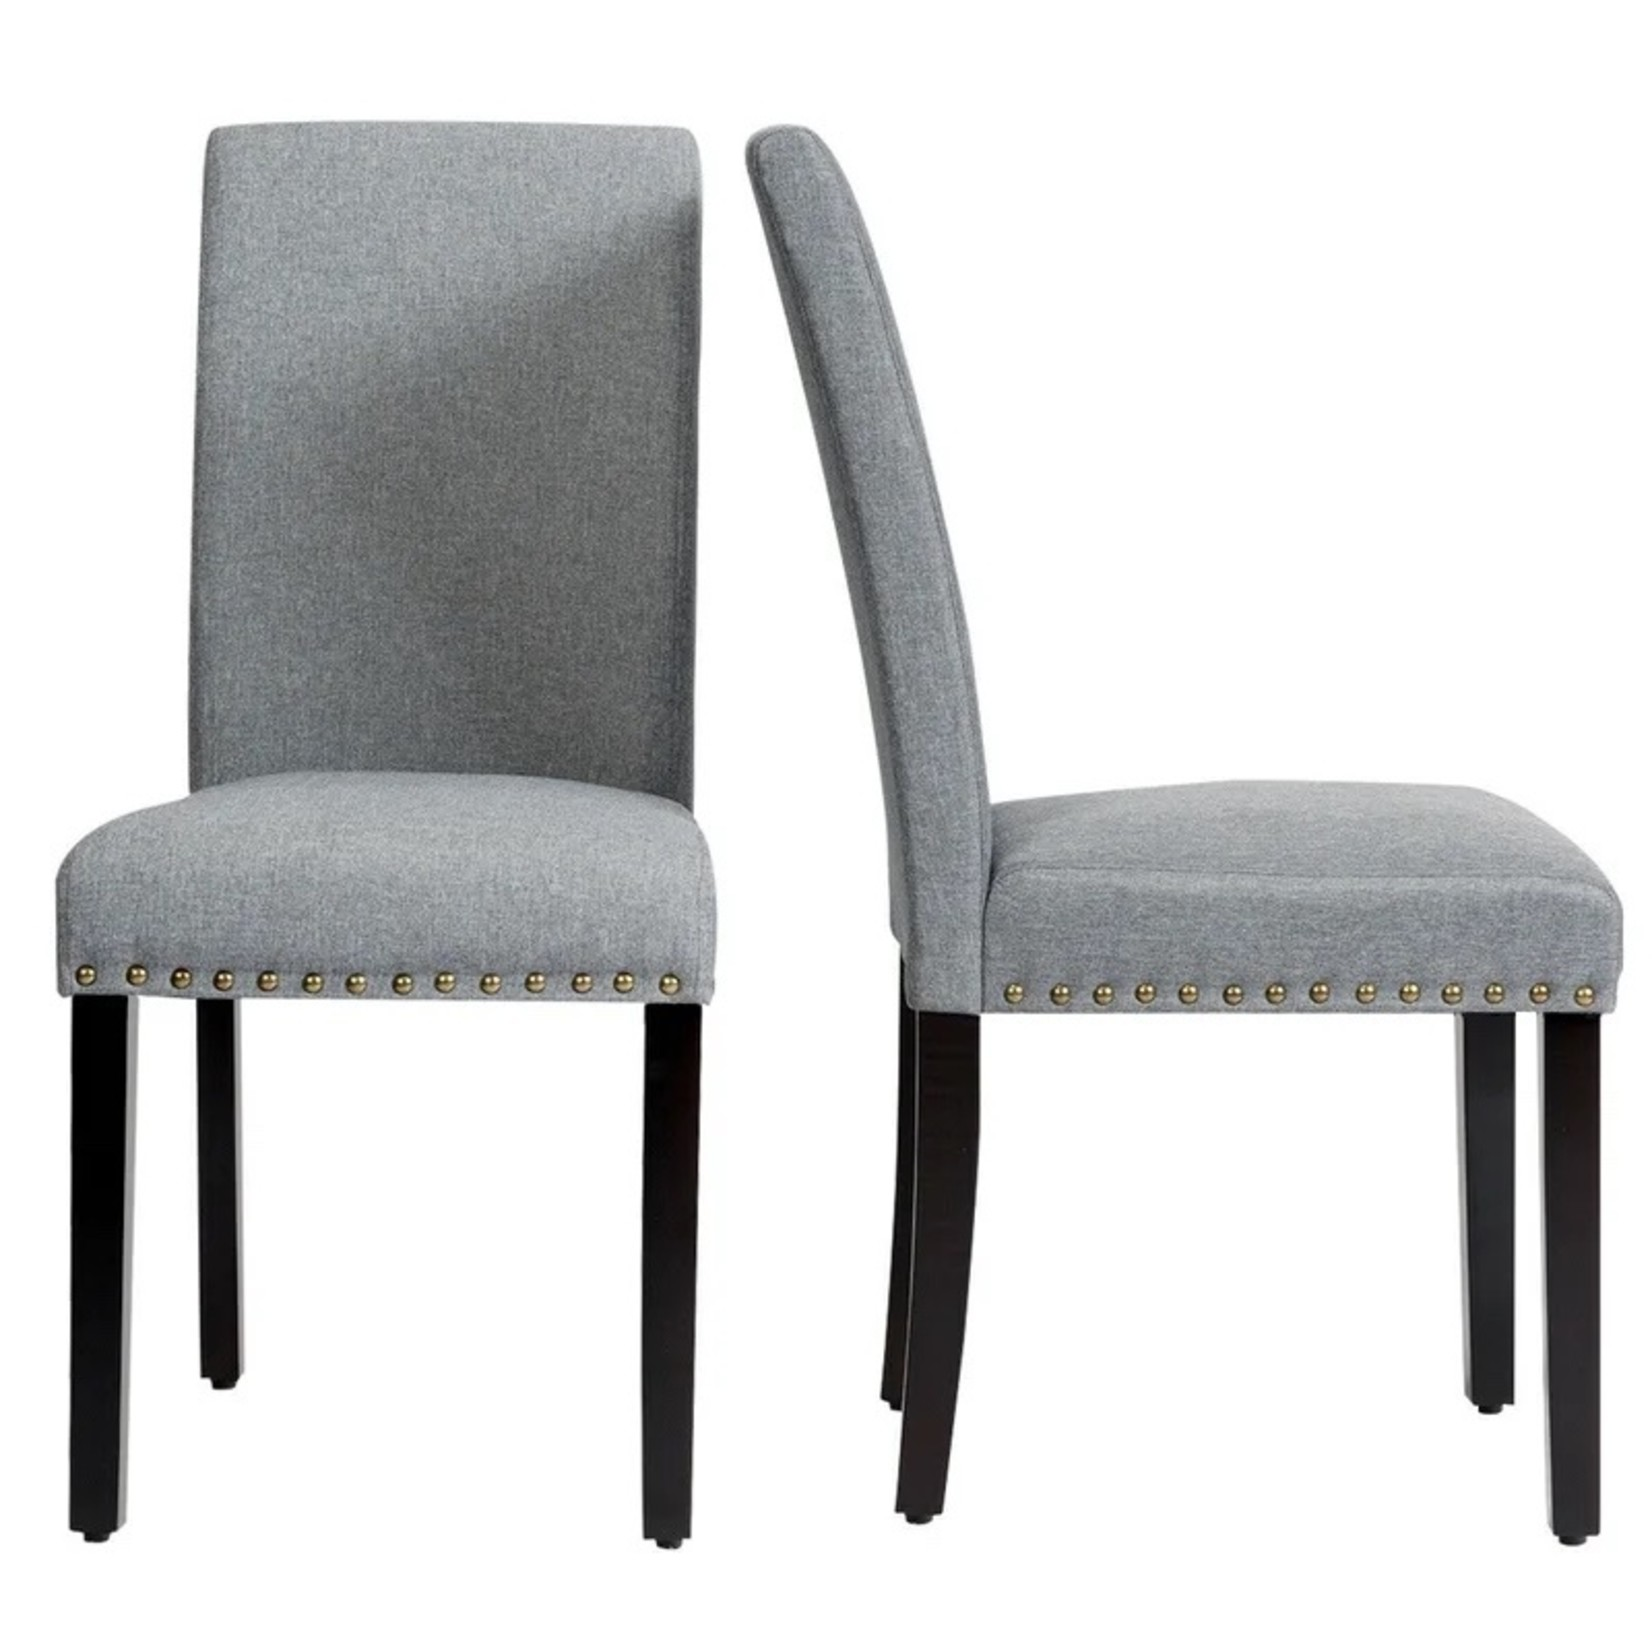 *Langione Linen Upholstered Dining Chairs - Set of 2